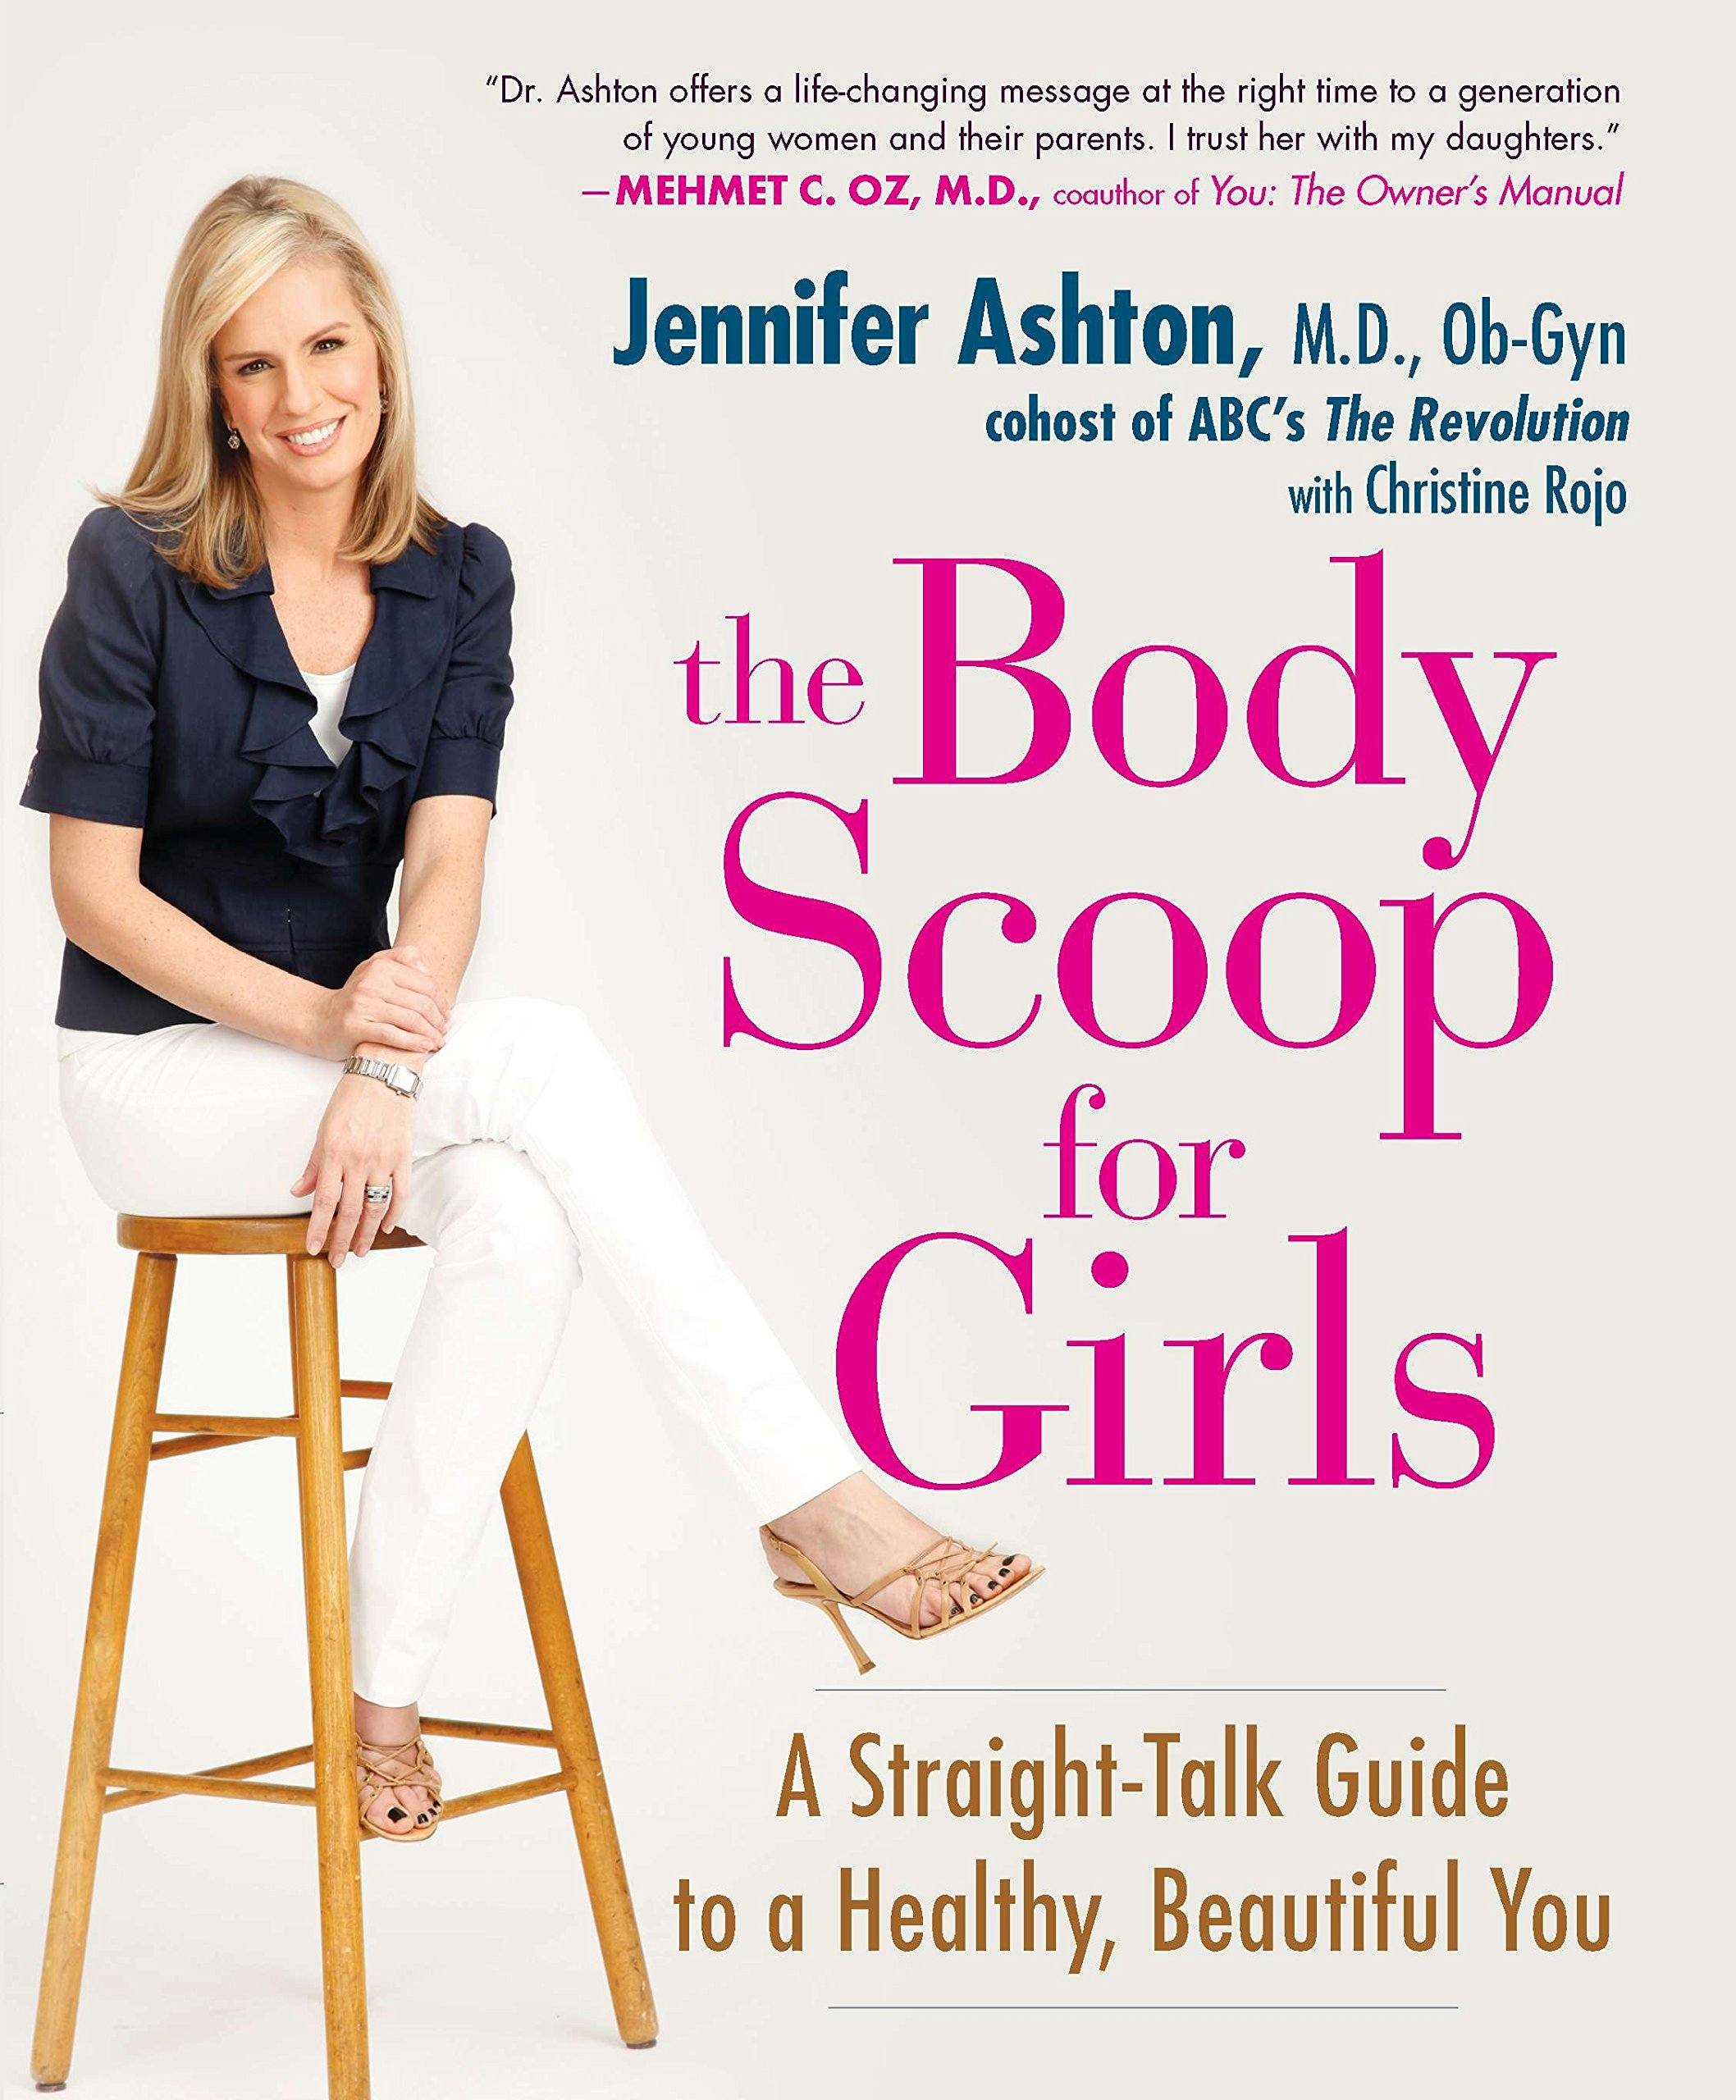 The Body Scoop for Girls: A Straight-Talk Guide to a Healthy, Beautiful  You: Jennifer Ashton M.D. Ob-G, Christine Rojo: 9781583333693: Amazon.com:  Books